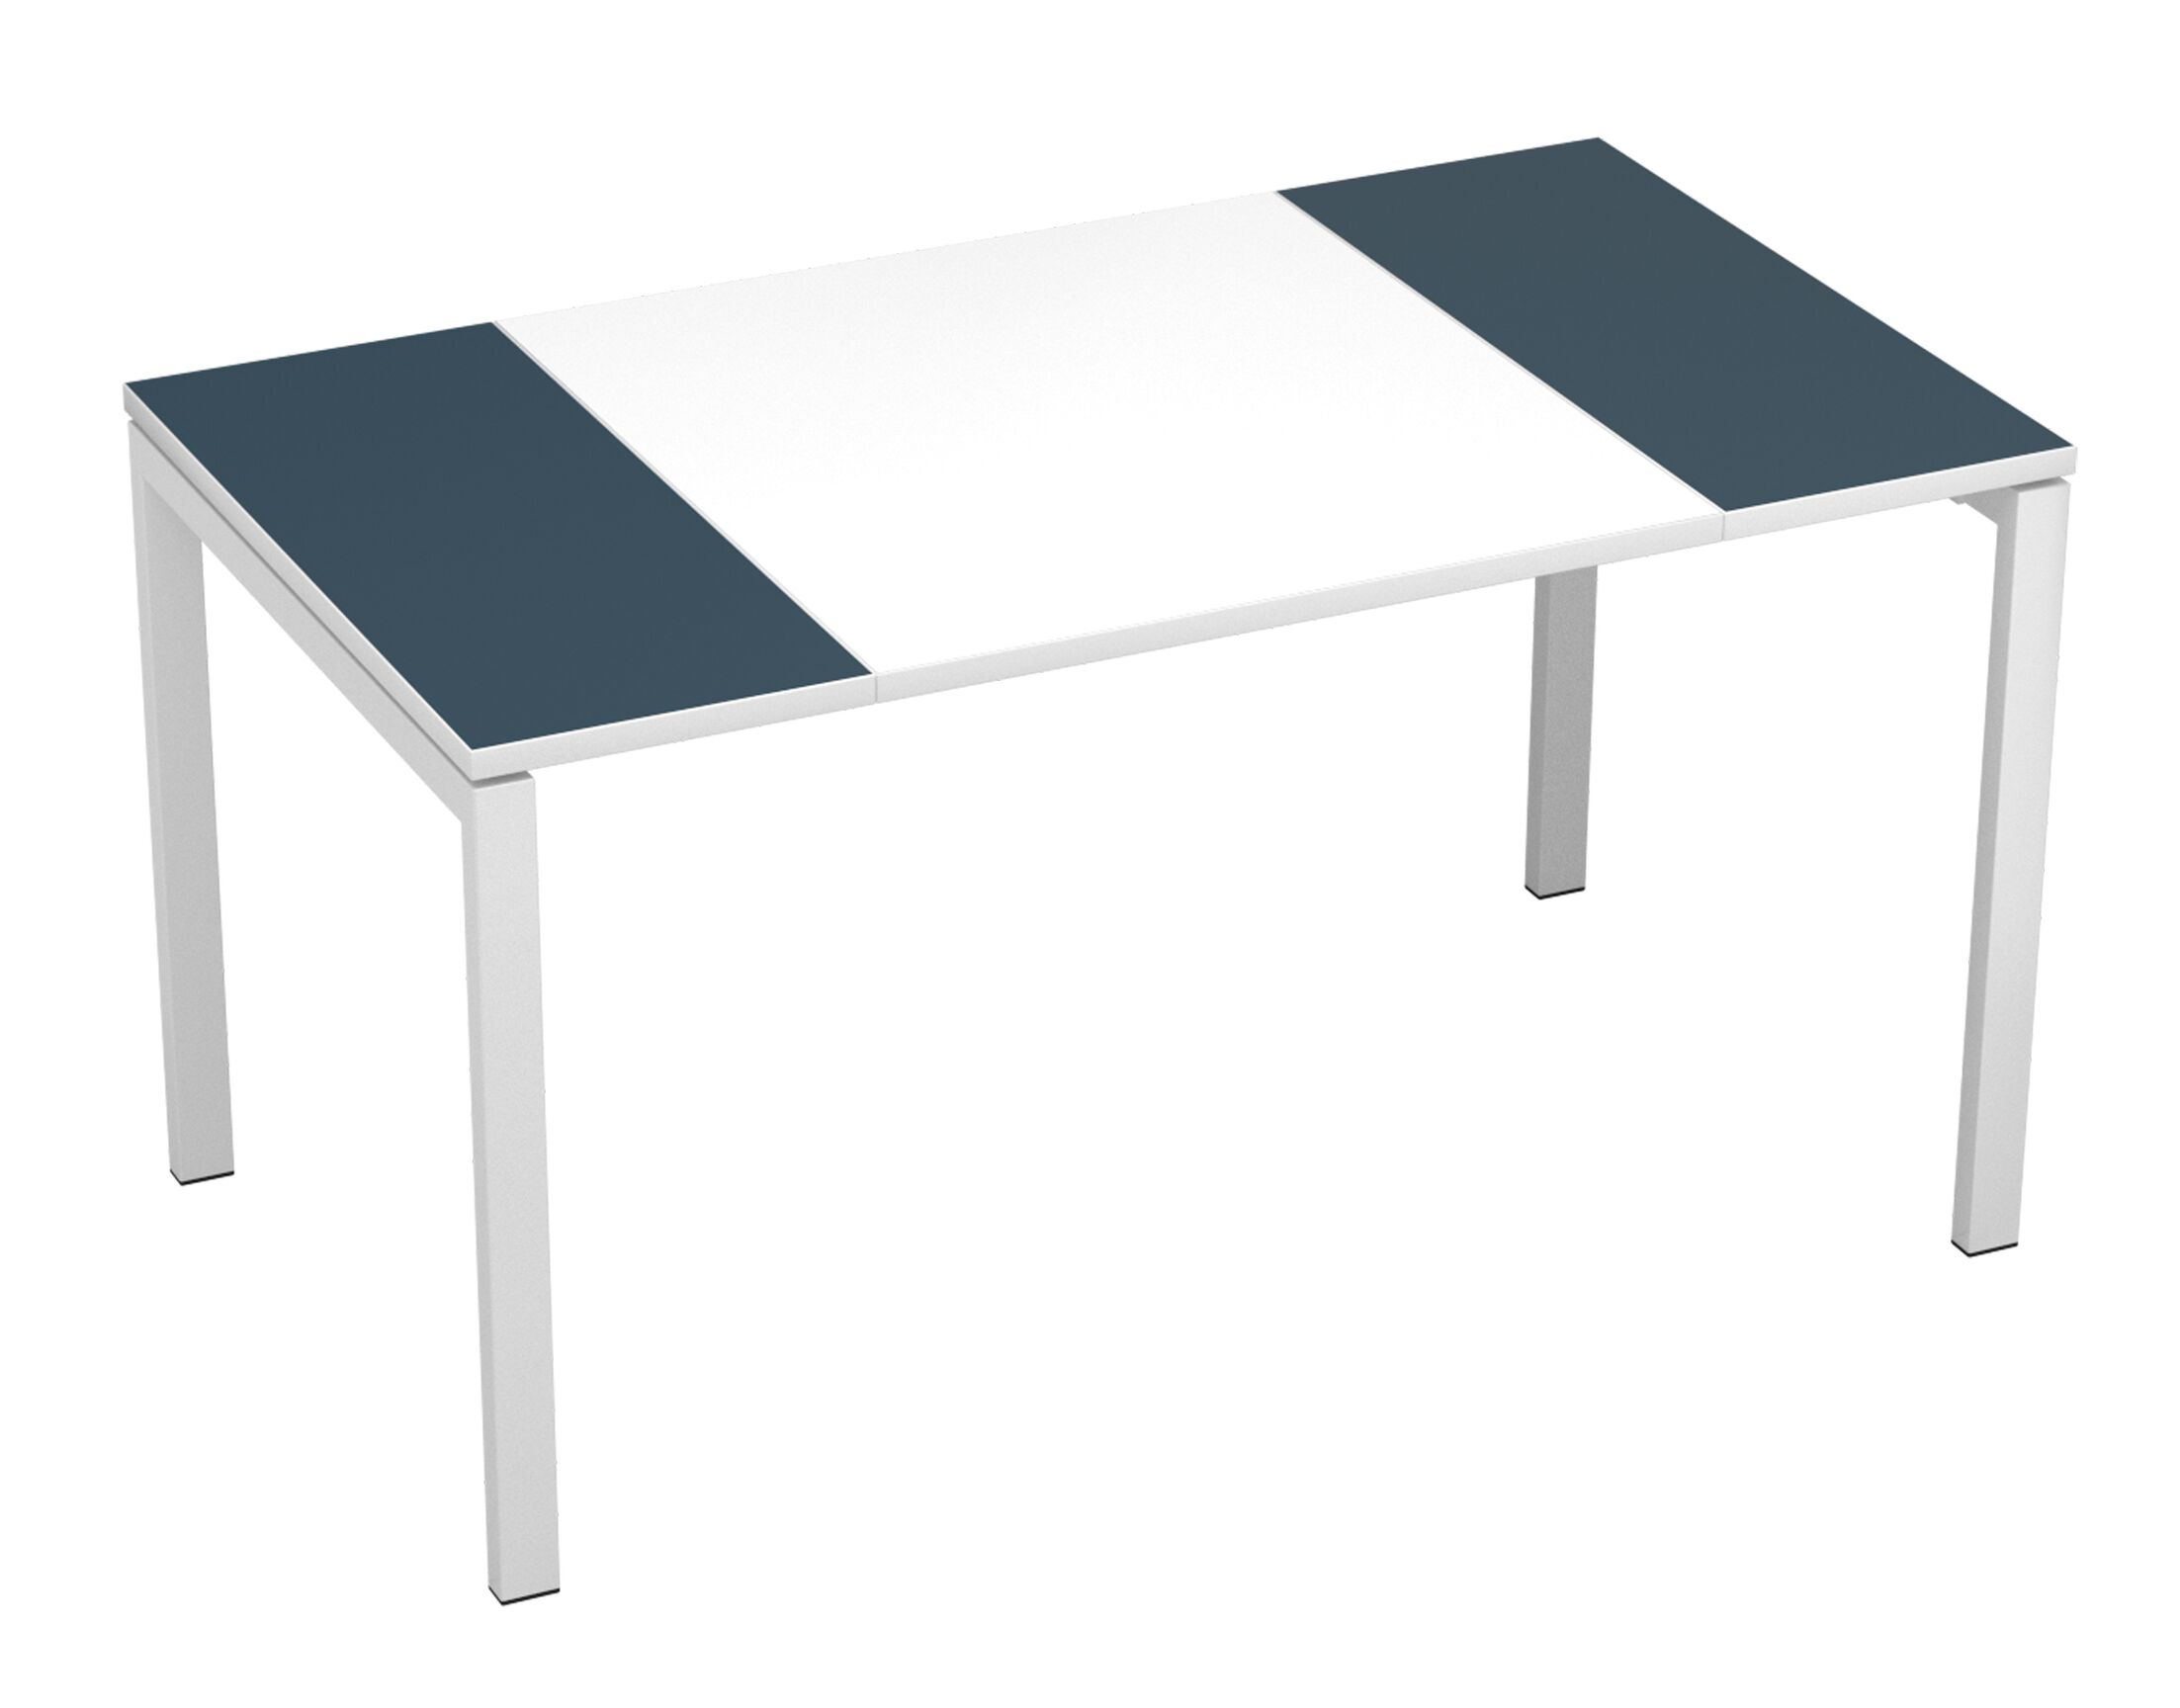 EasyDesk Training Table Finish: White / Antracite, Size: 30